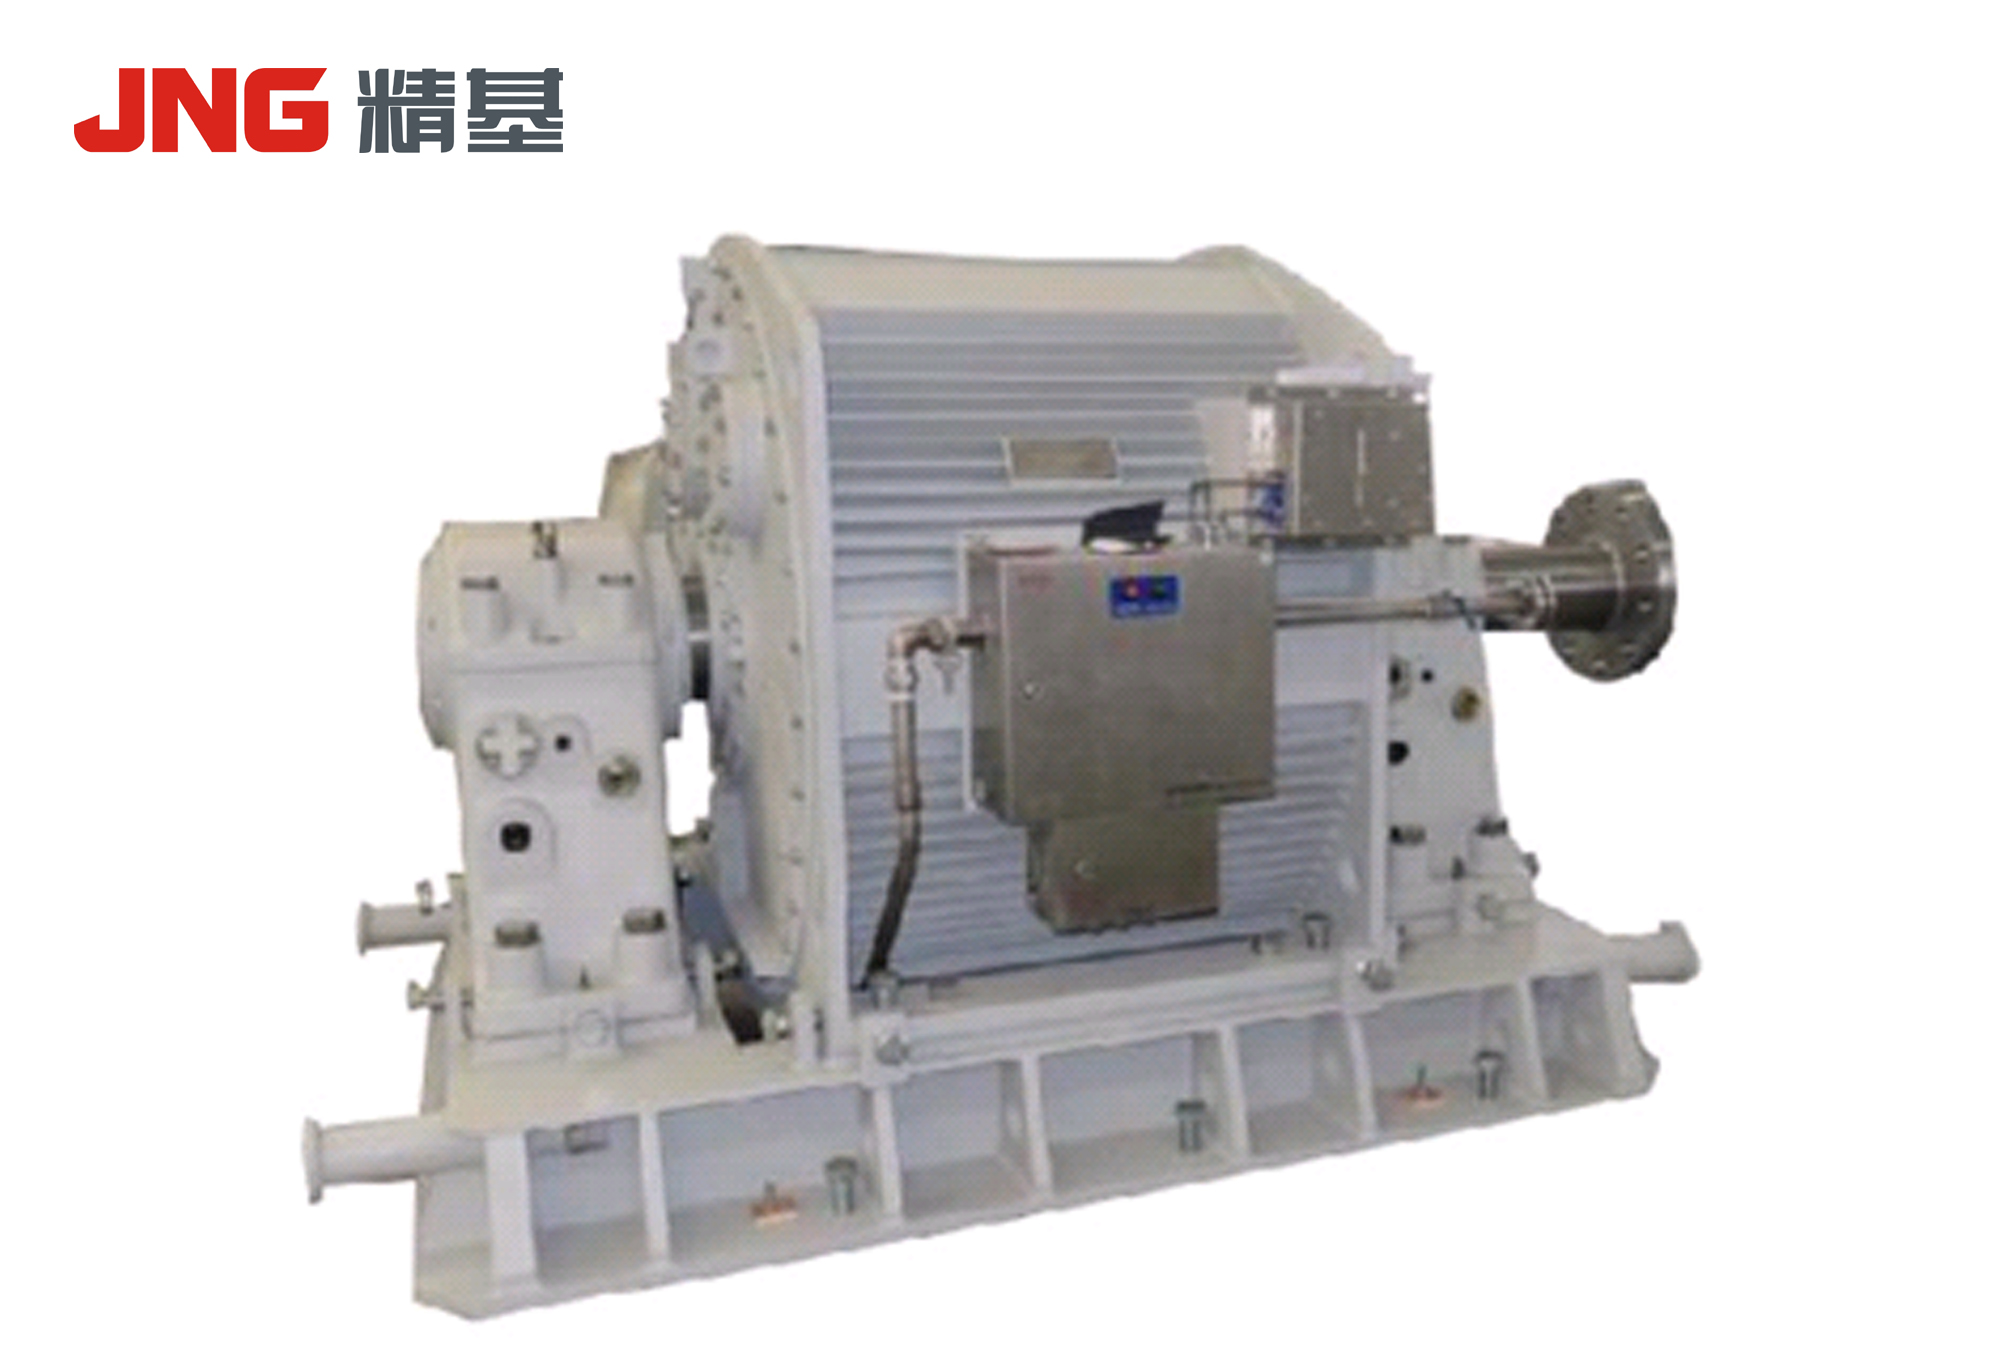 Three-phase permanent magnet synchronous motor for reciprocating compressor